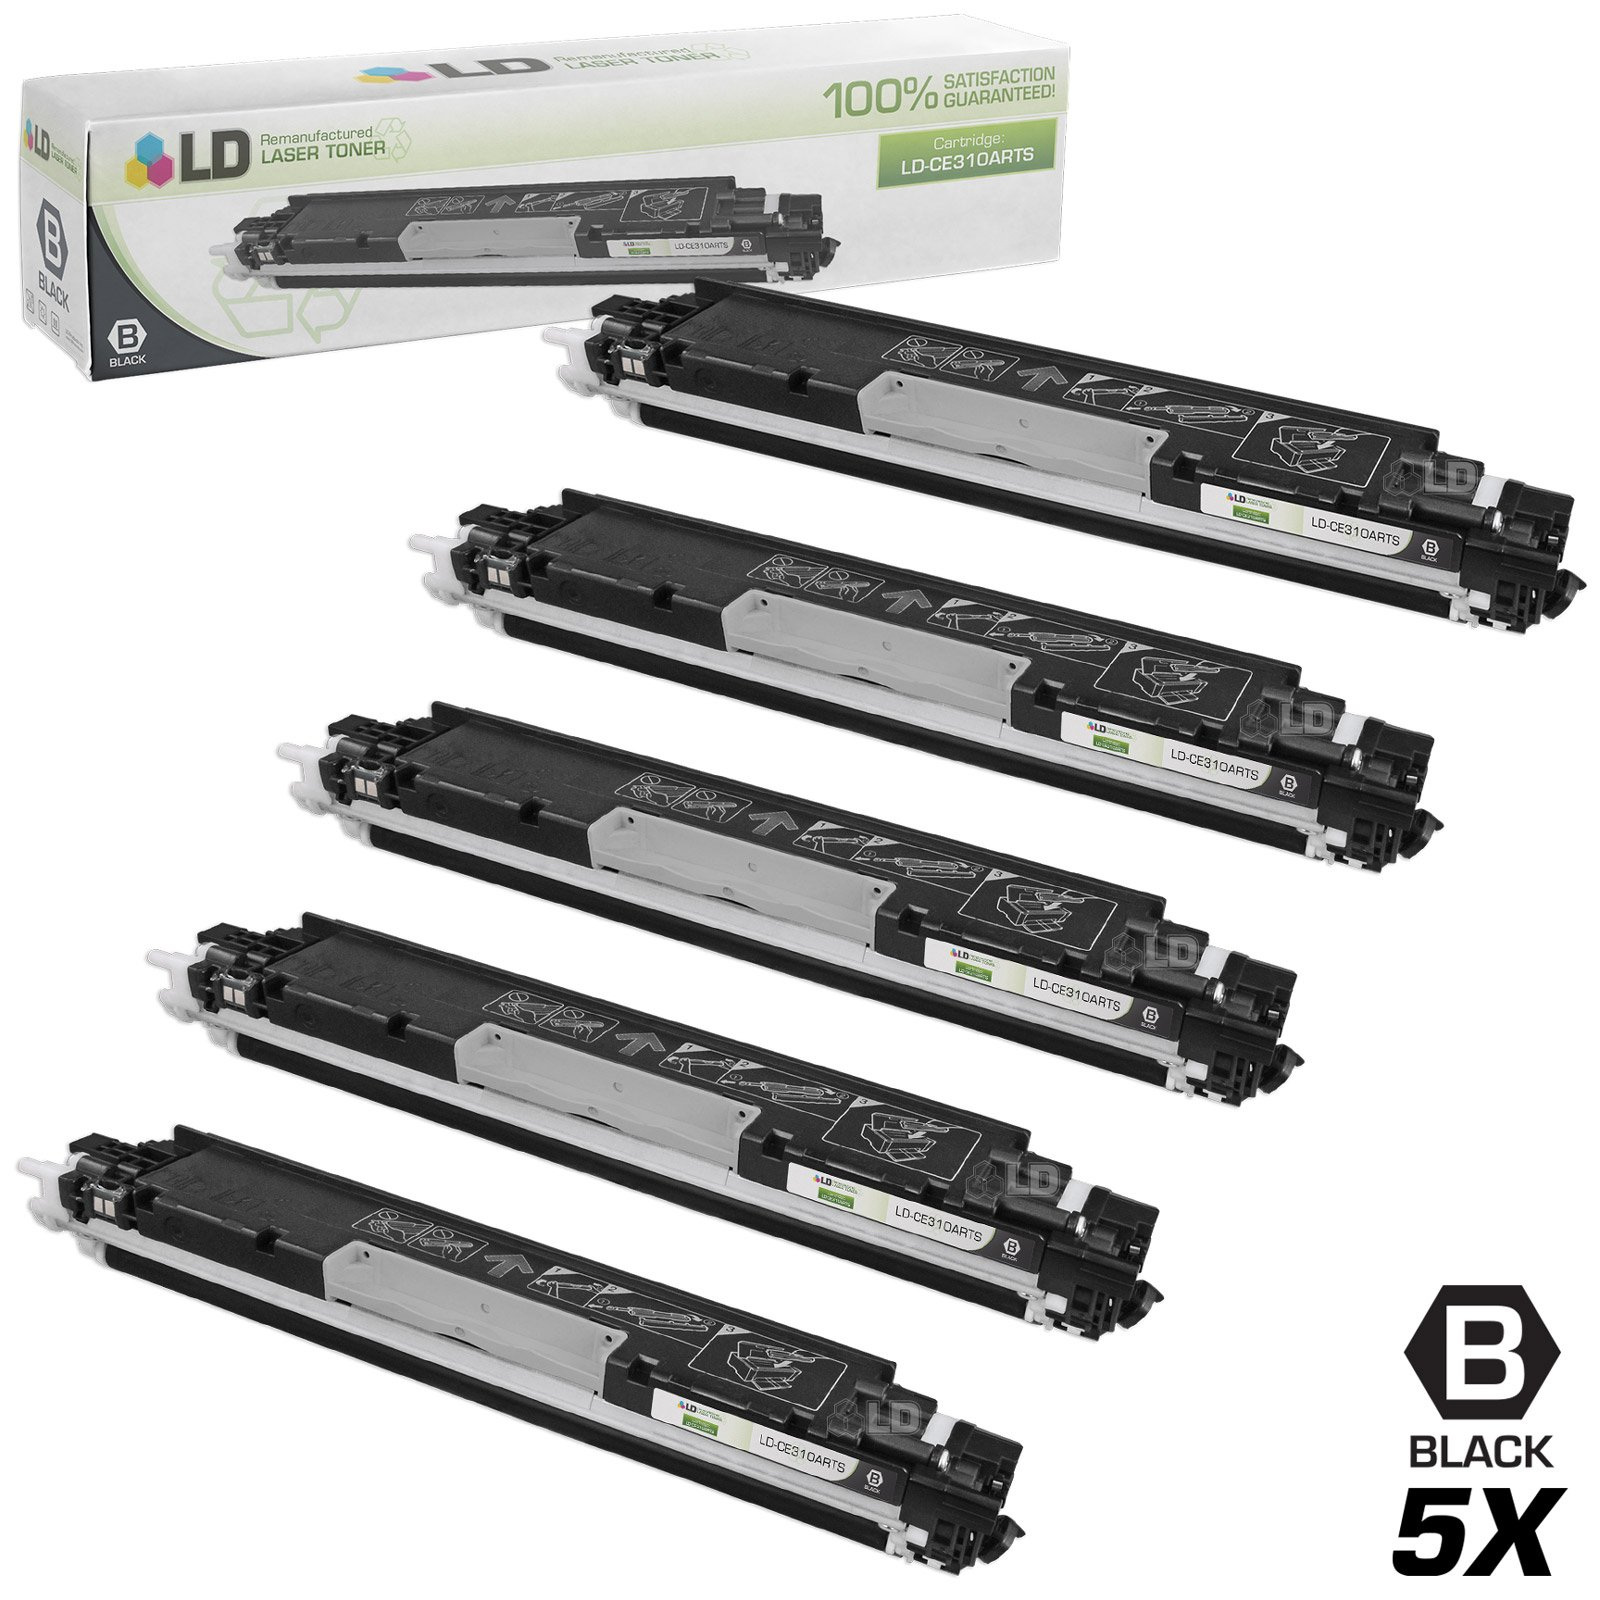 LD Remanufactured Toner Cartridge Replacement for HP 126A CE310A (Black, 5-Pack)